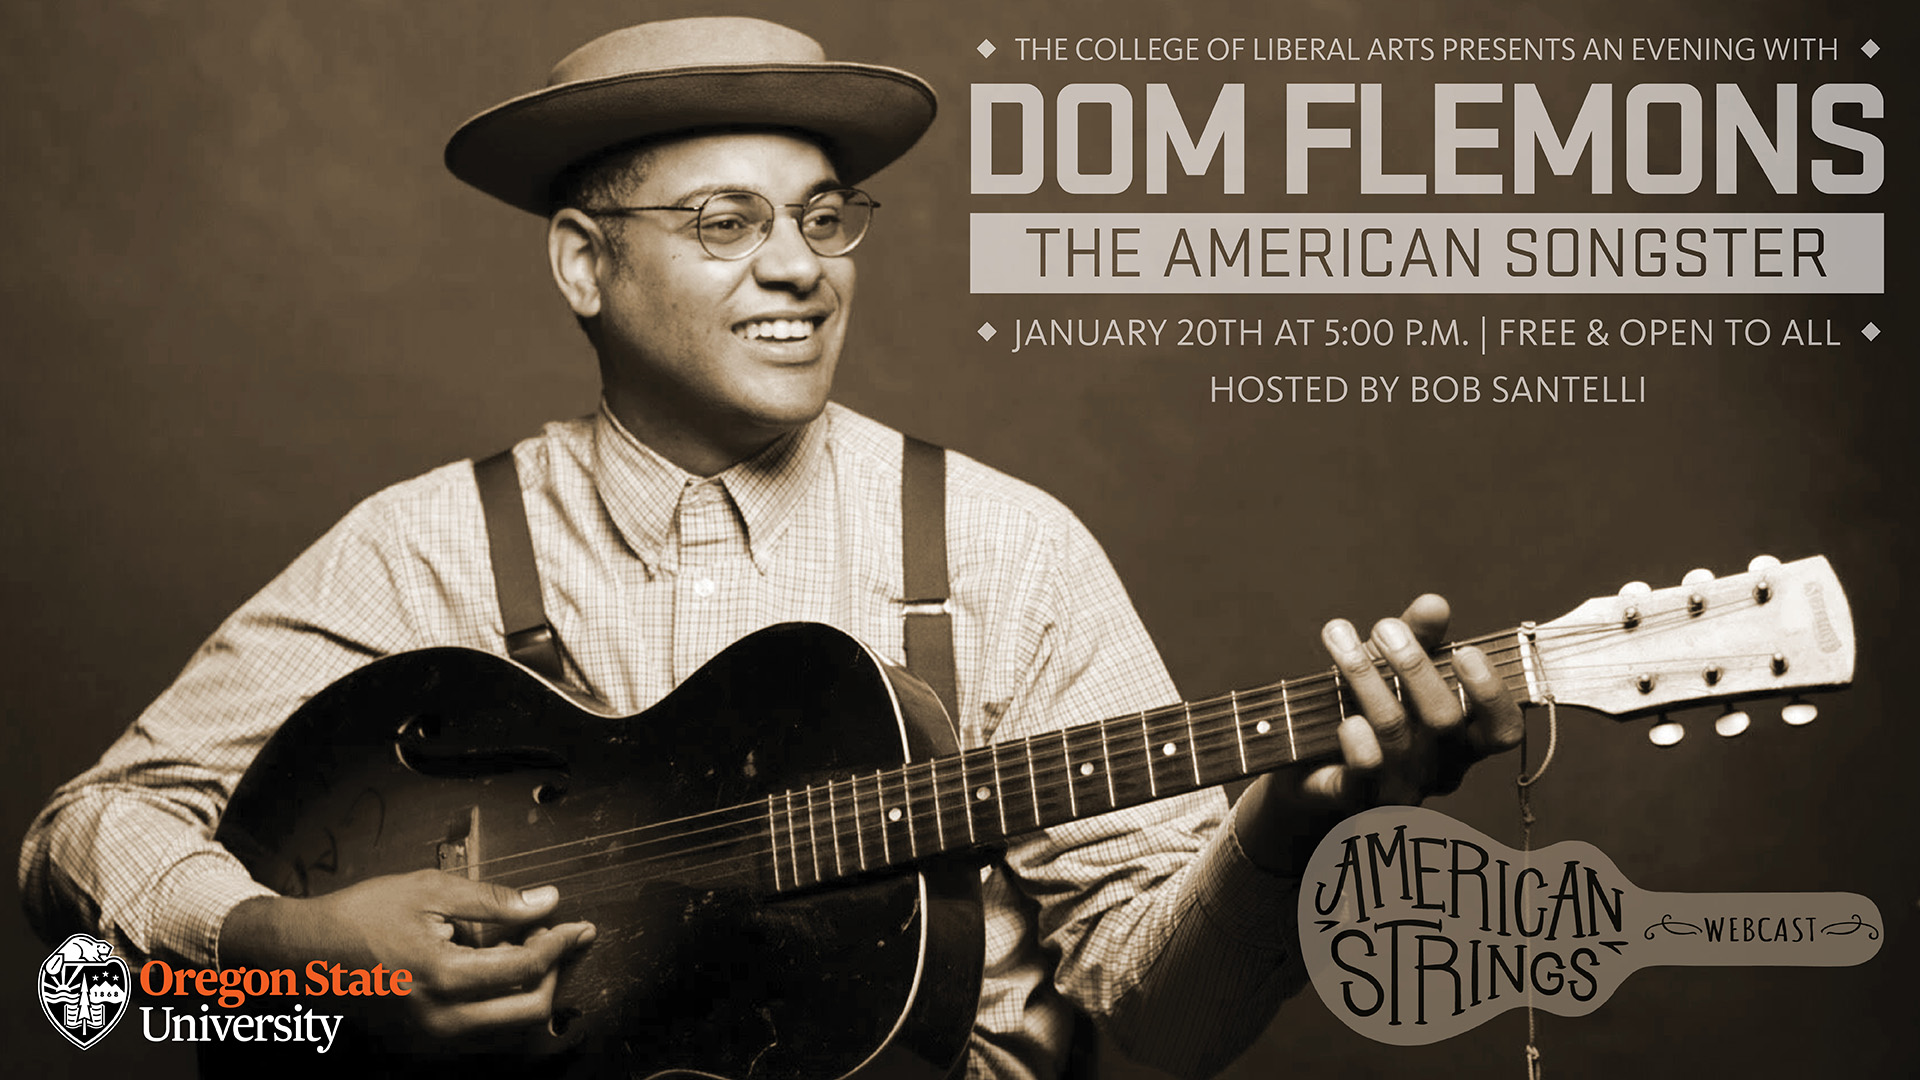 An Evening with Dom Flemons